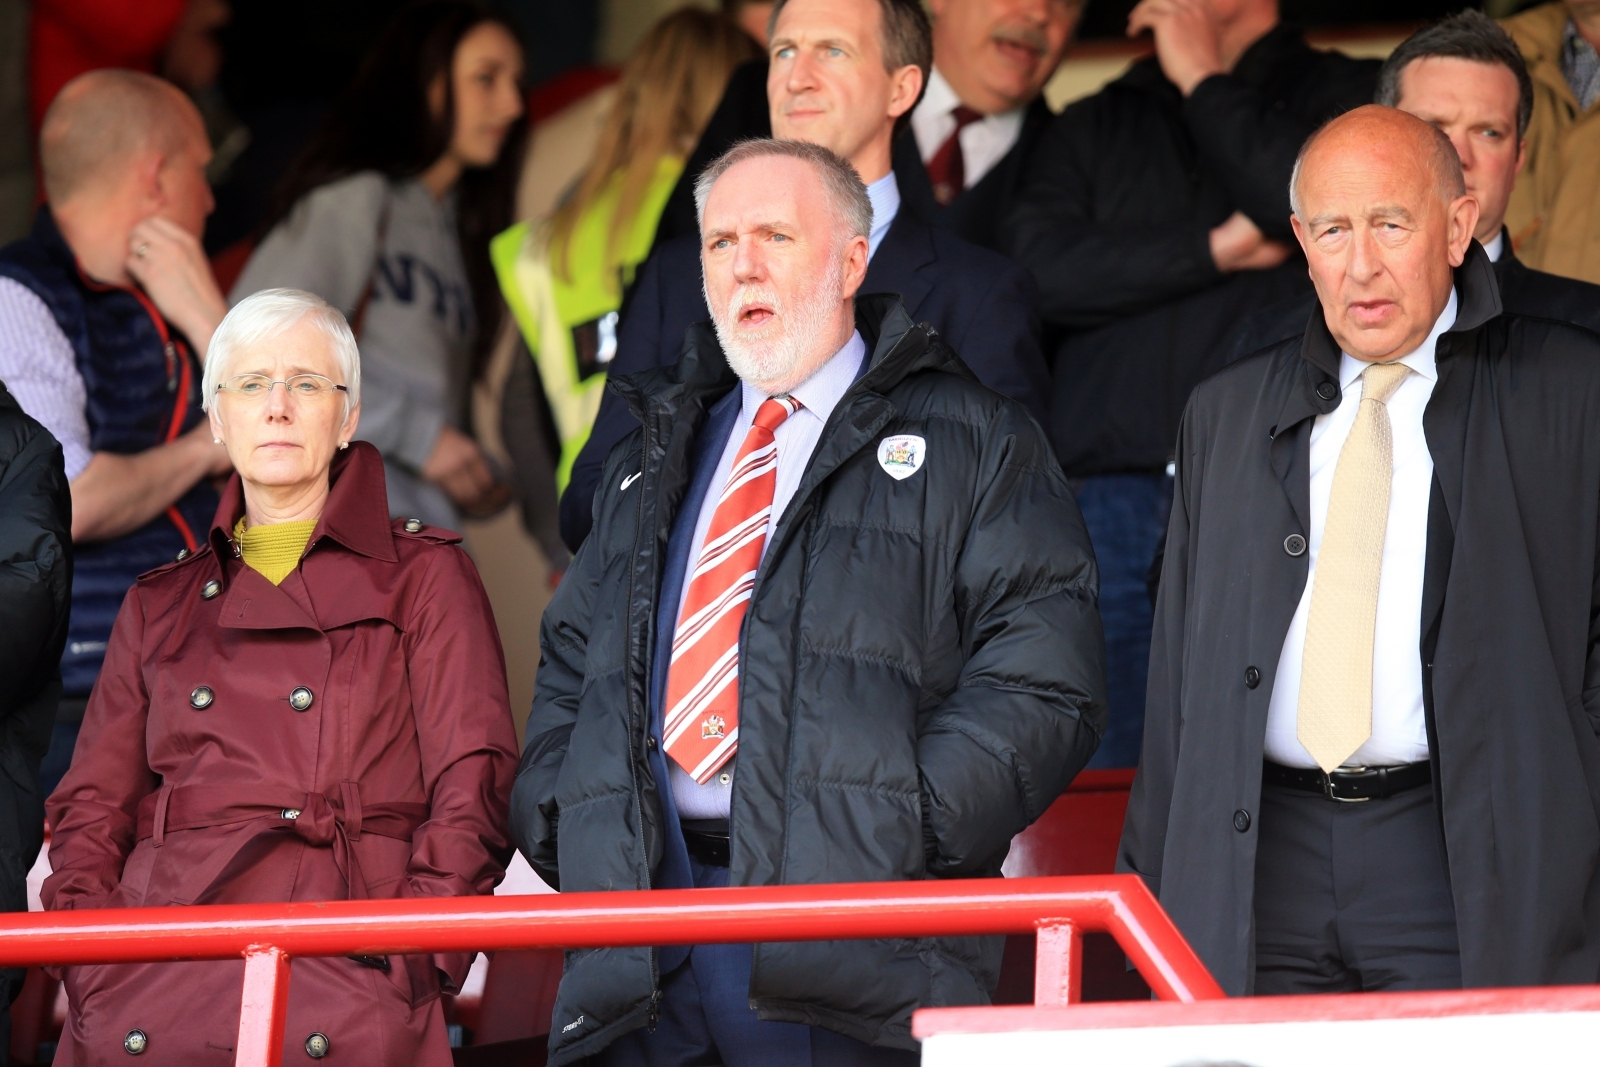 Barnsley Football Club, Patrick Cryne (middle), watching his team play at their Oakwell ground